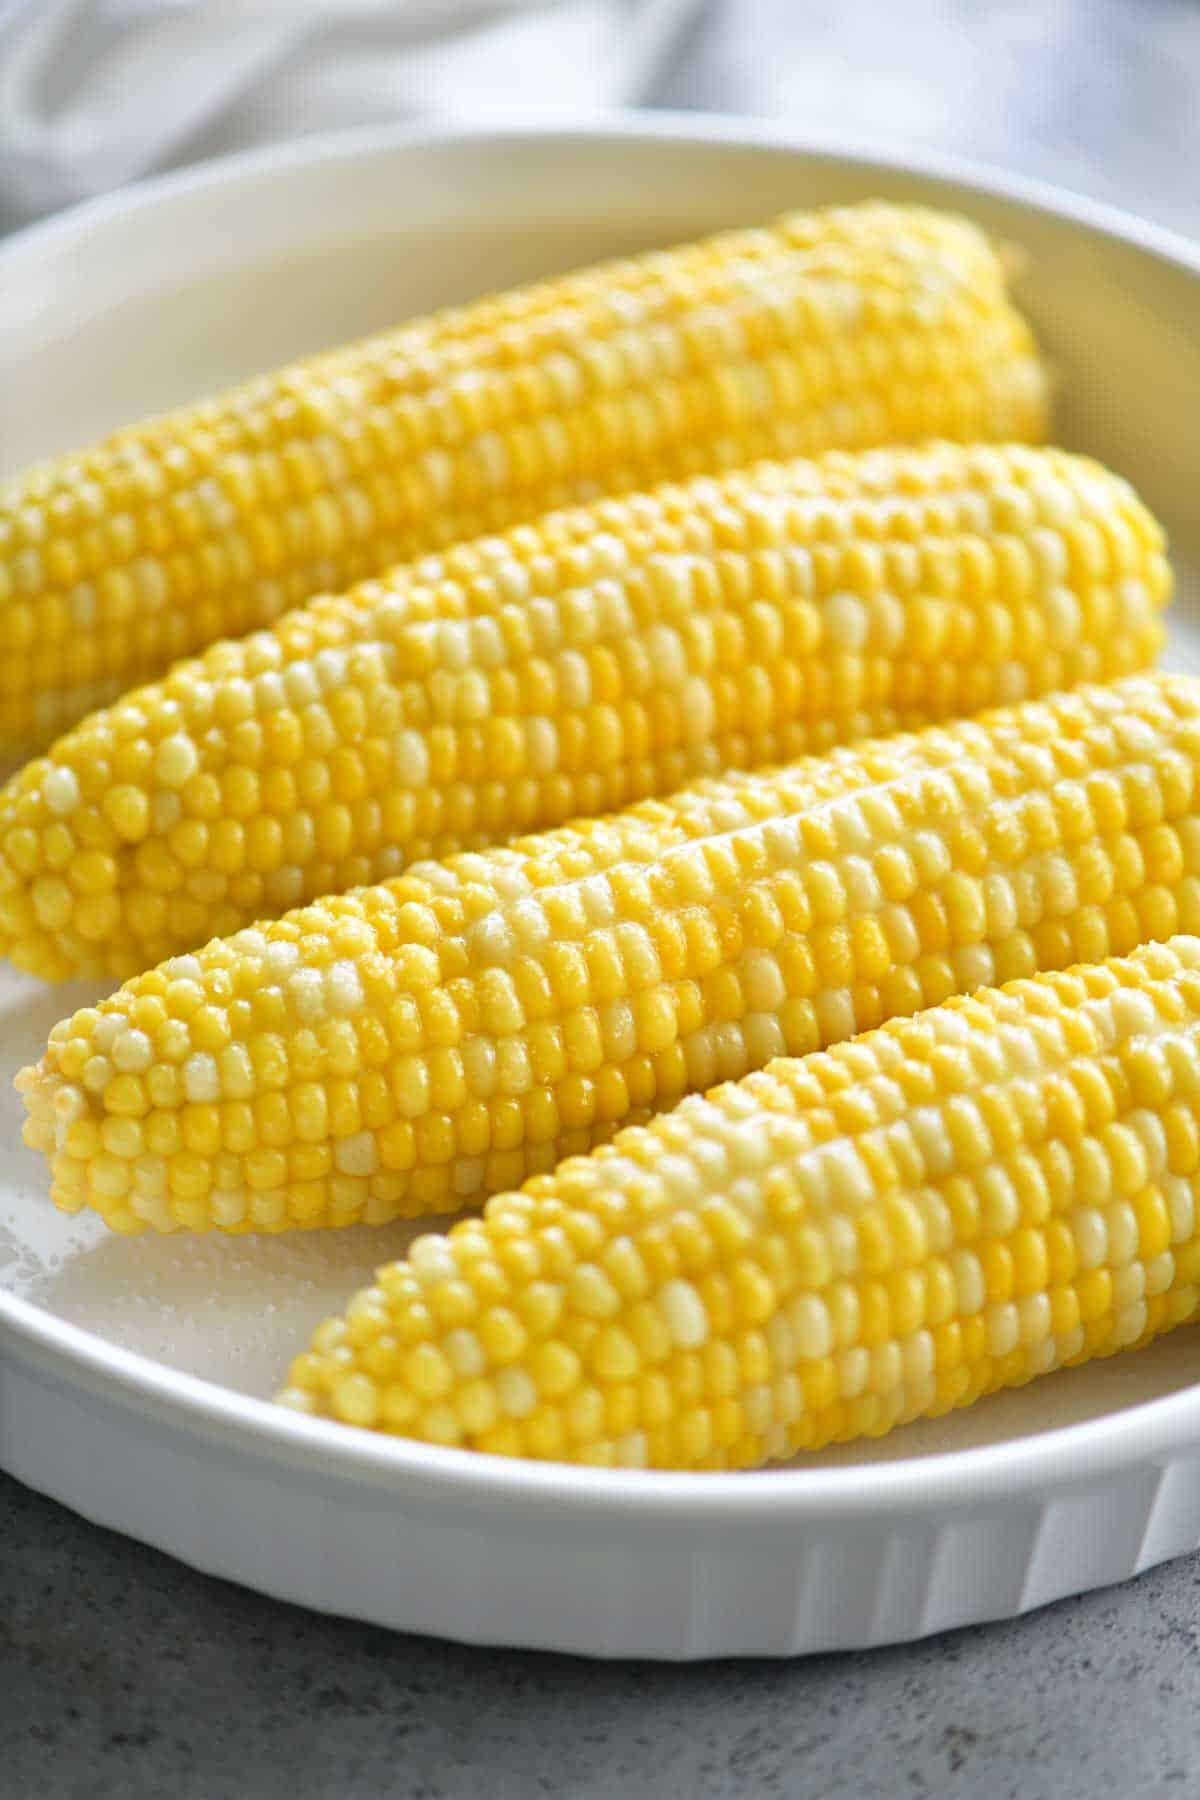 boiled corn on the